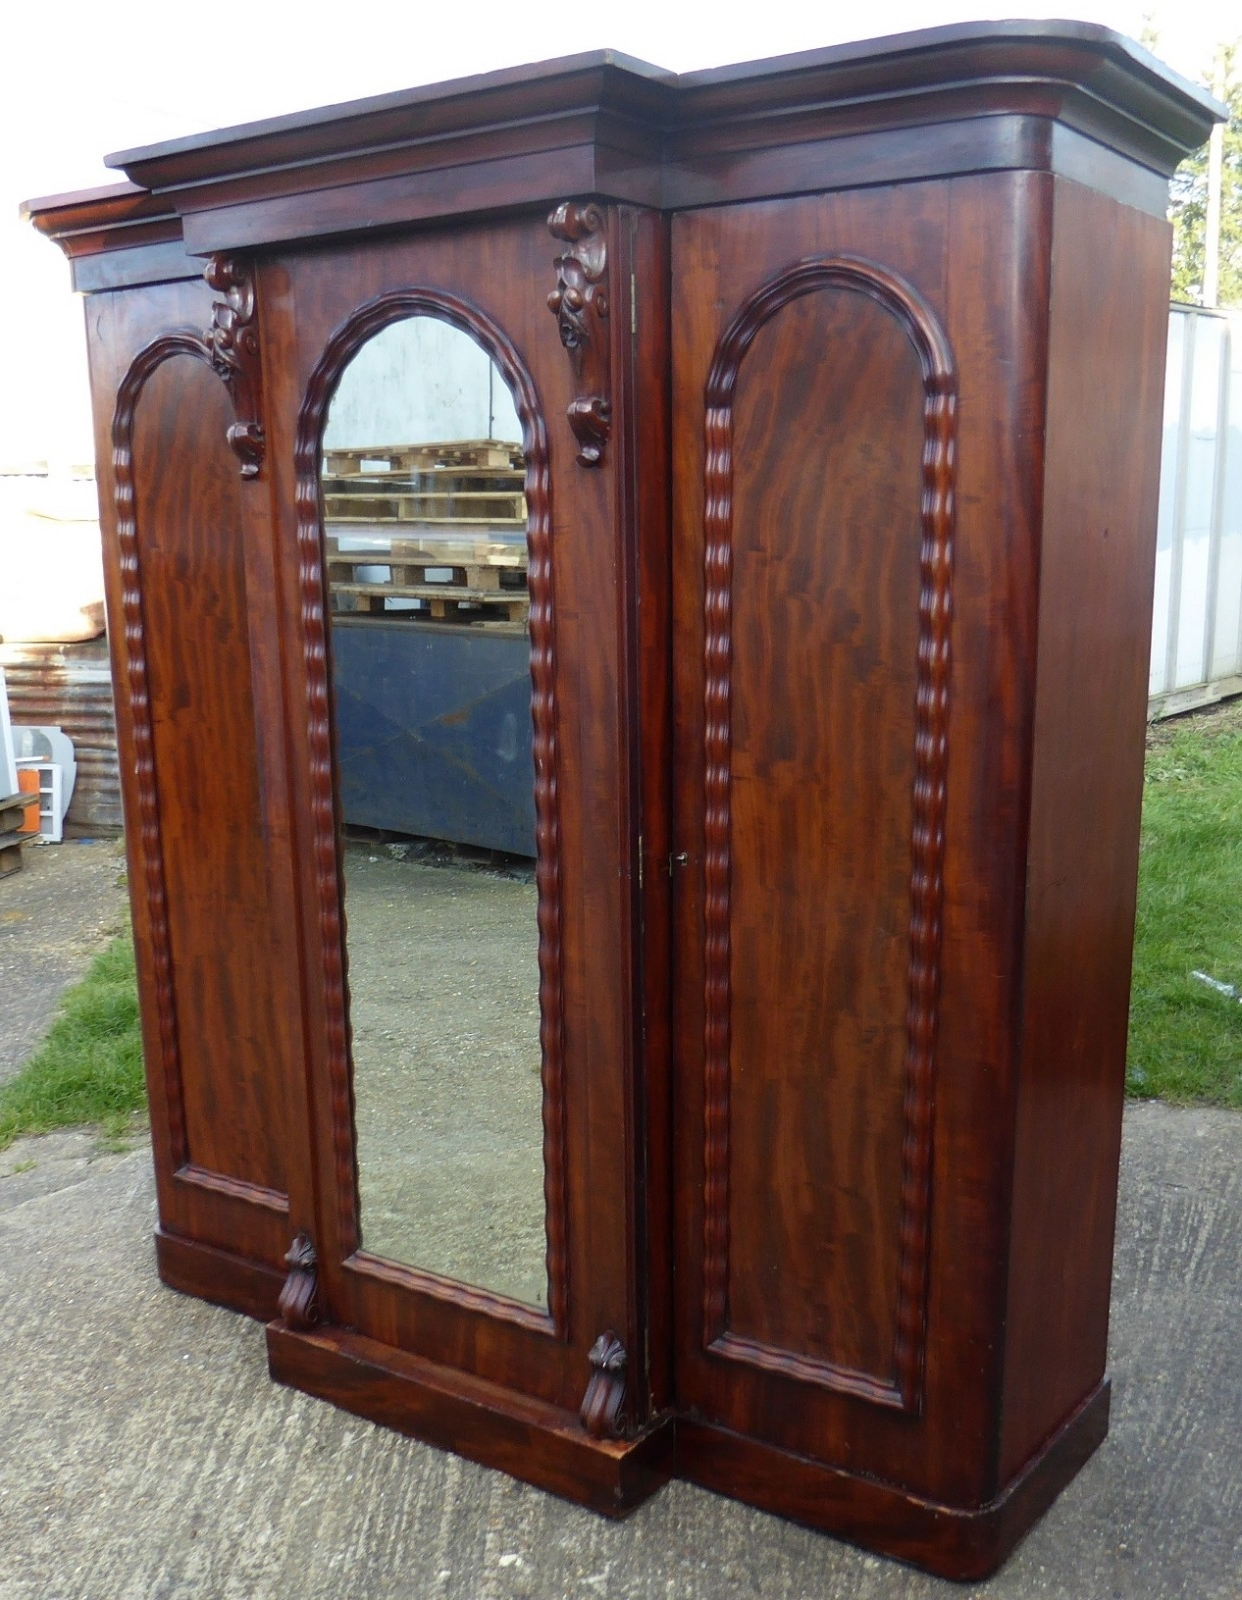 Antique Wardrobes With Breakfront Wardrobes (View 3 of 15)